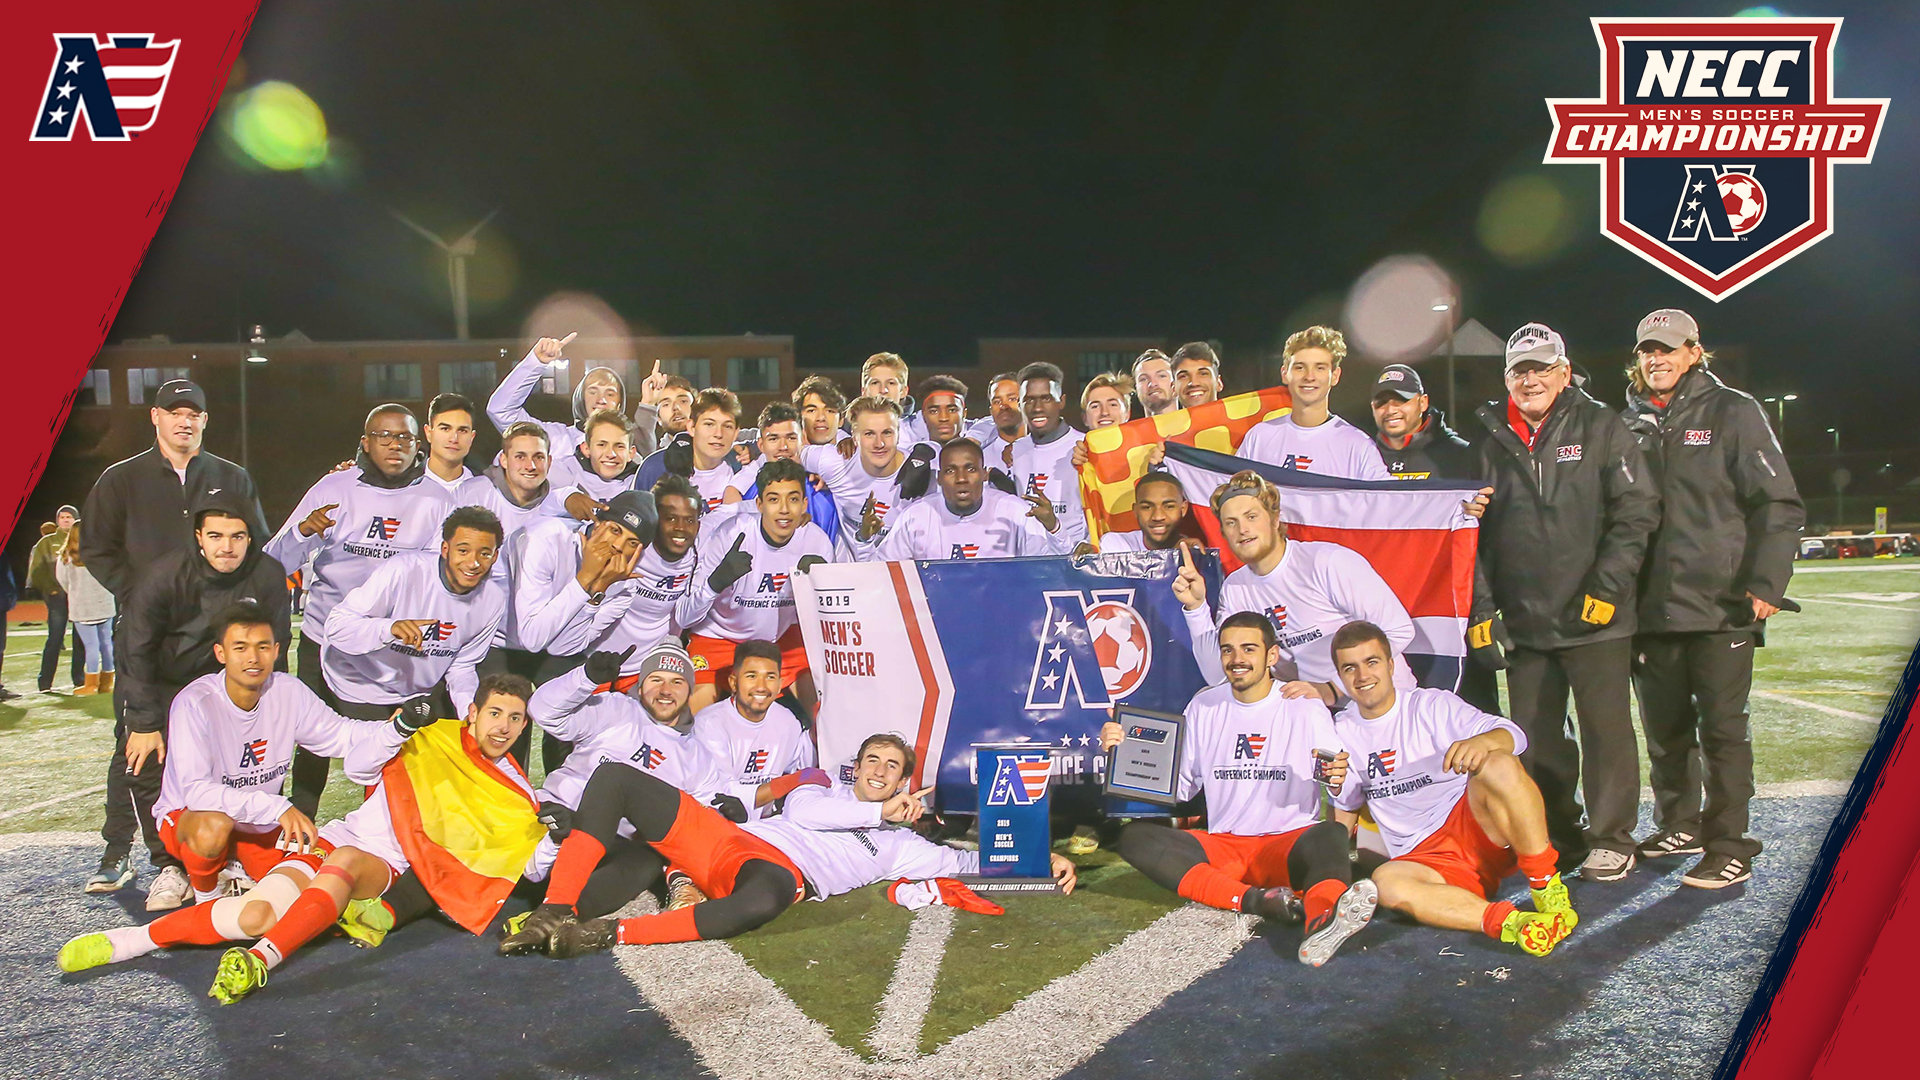 Eastern Nazarene Captures NECC Men's Soccer Championship With 3-1 Victory at Lesley